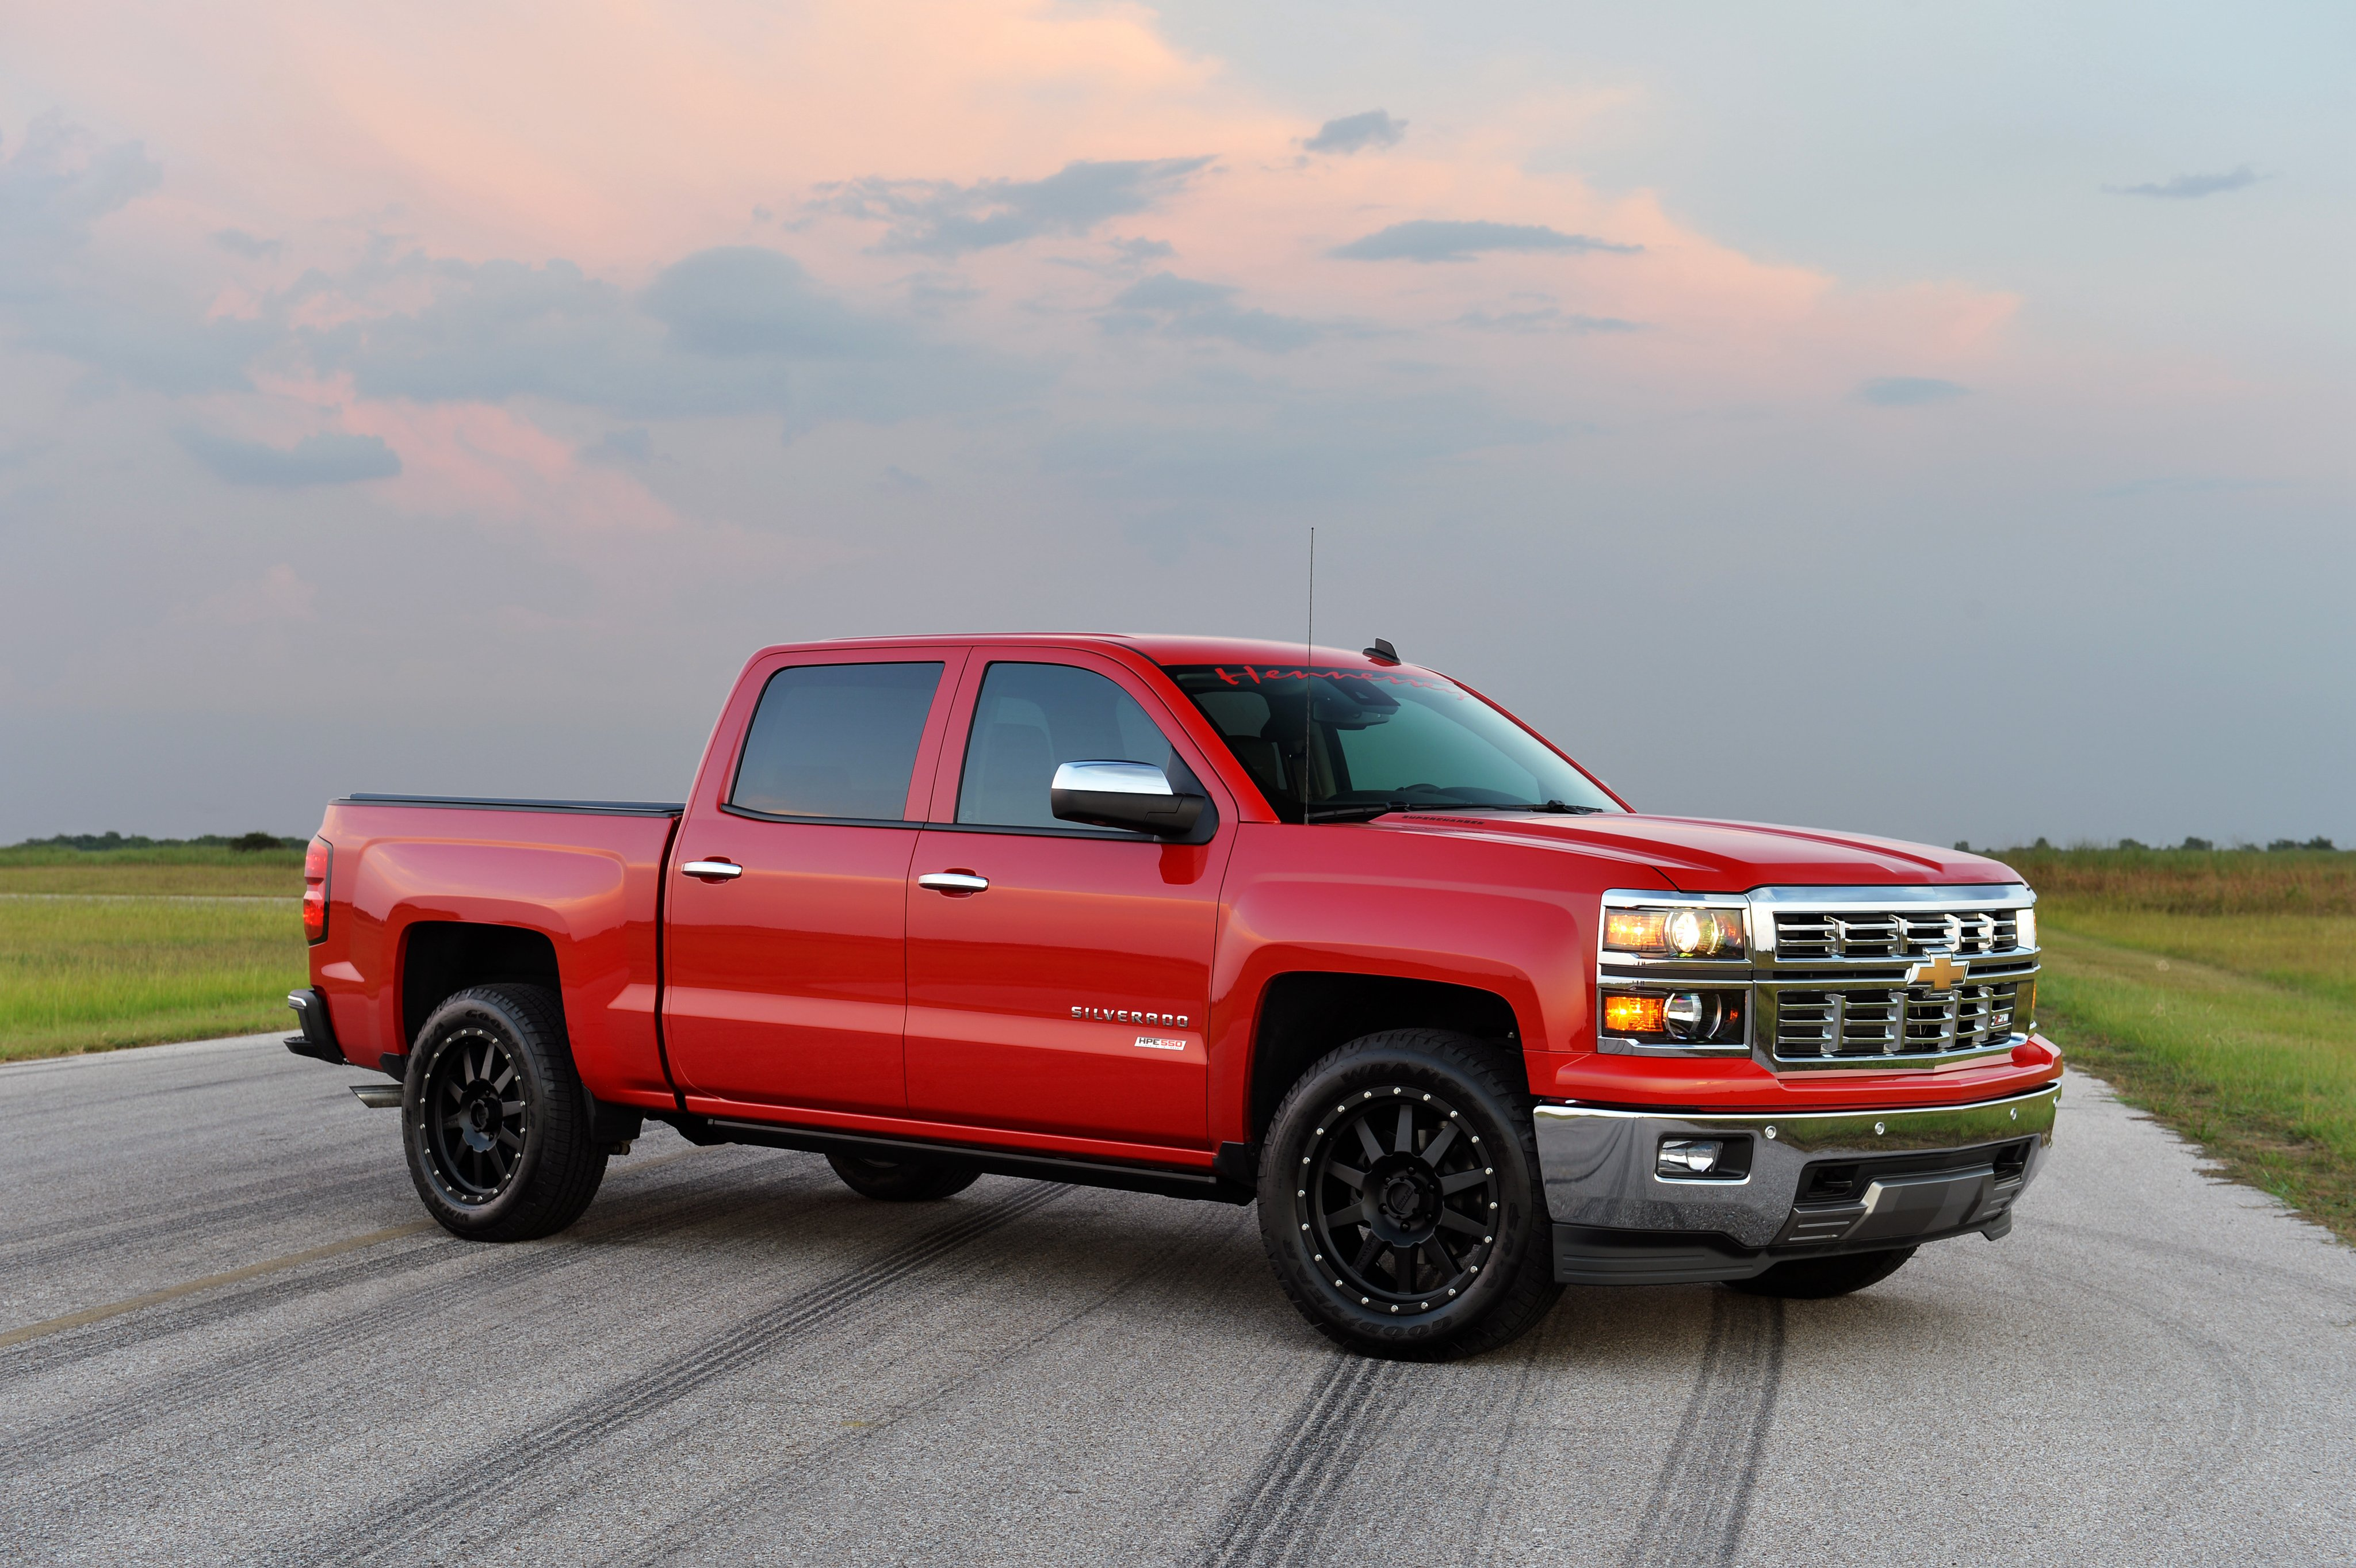 2015 hennessey chevrolet silverado z71 hpe550 pickup muscle tuning wallpaper 4096x2726 461862 wallpaperup